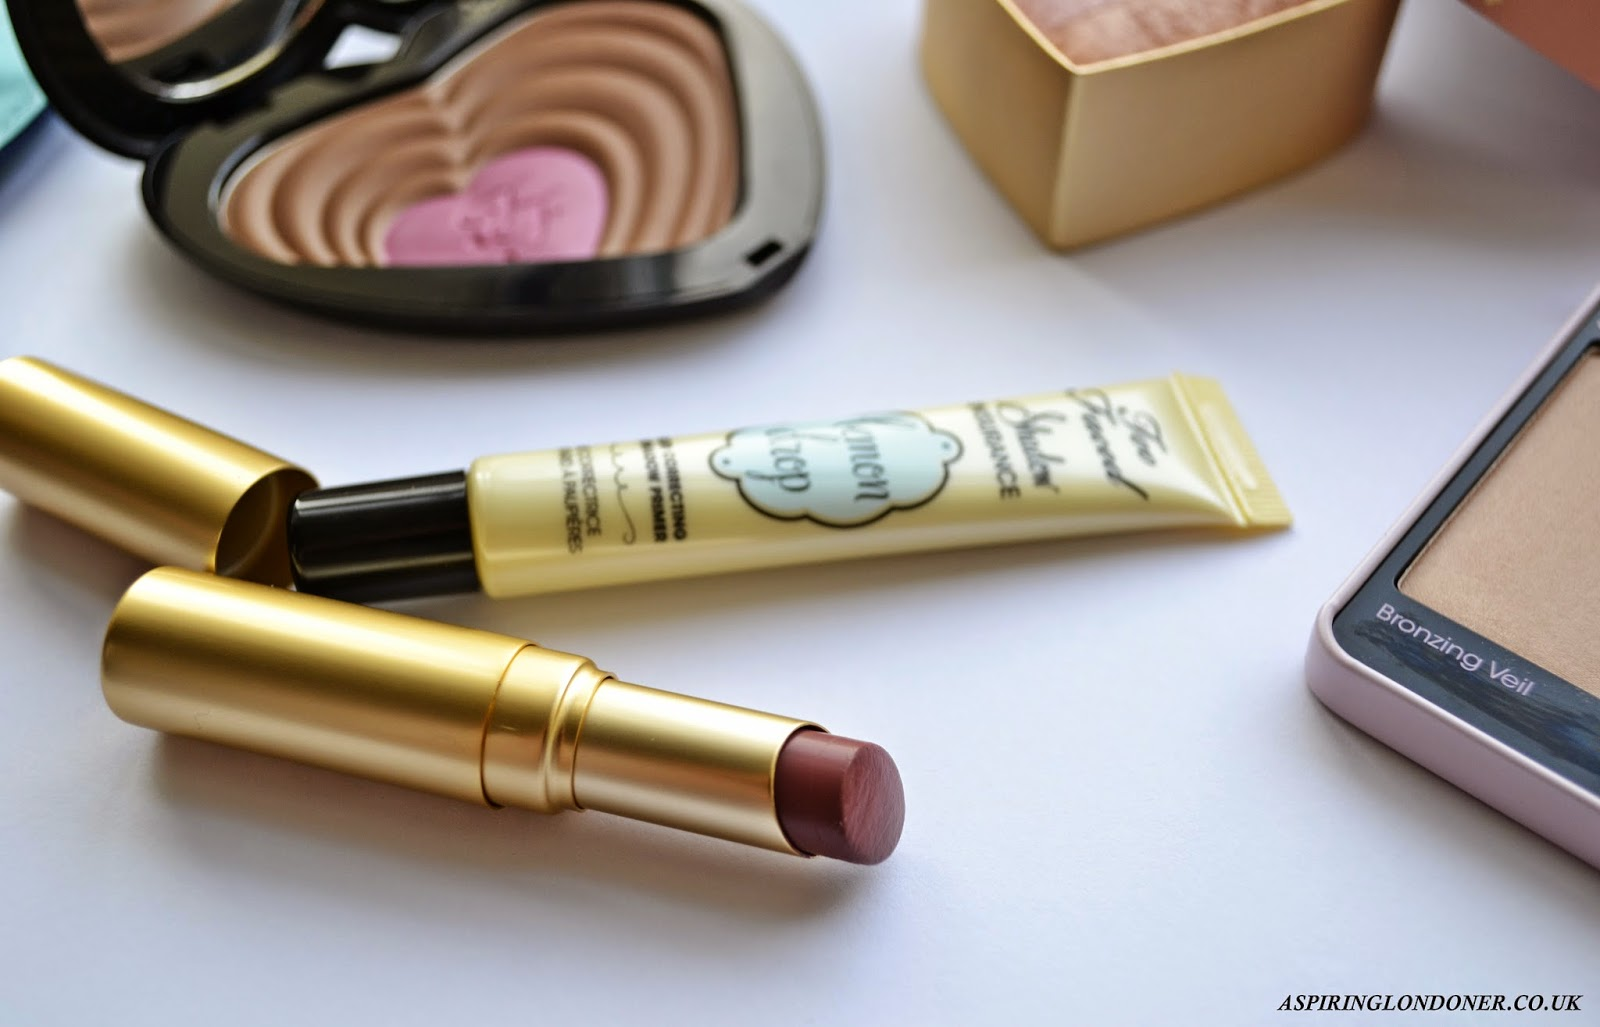 Too Faced La Crème Color Drenched Lip Cream in Sweet Maple Review - Aspiring Londoner